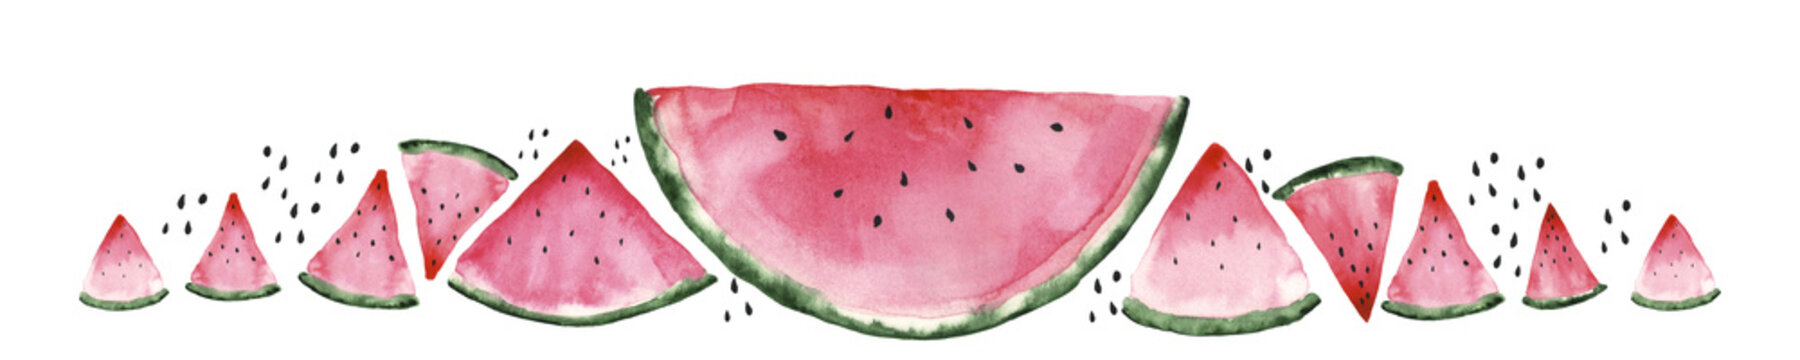 Fresh red watermelon on white isolated background. Watercolor illustration. Concept. Collage